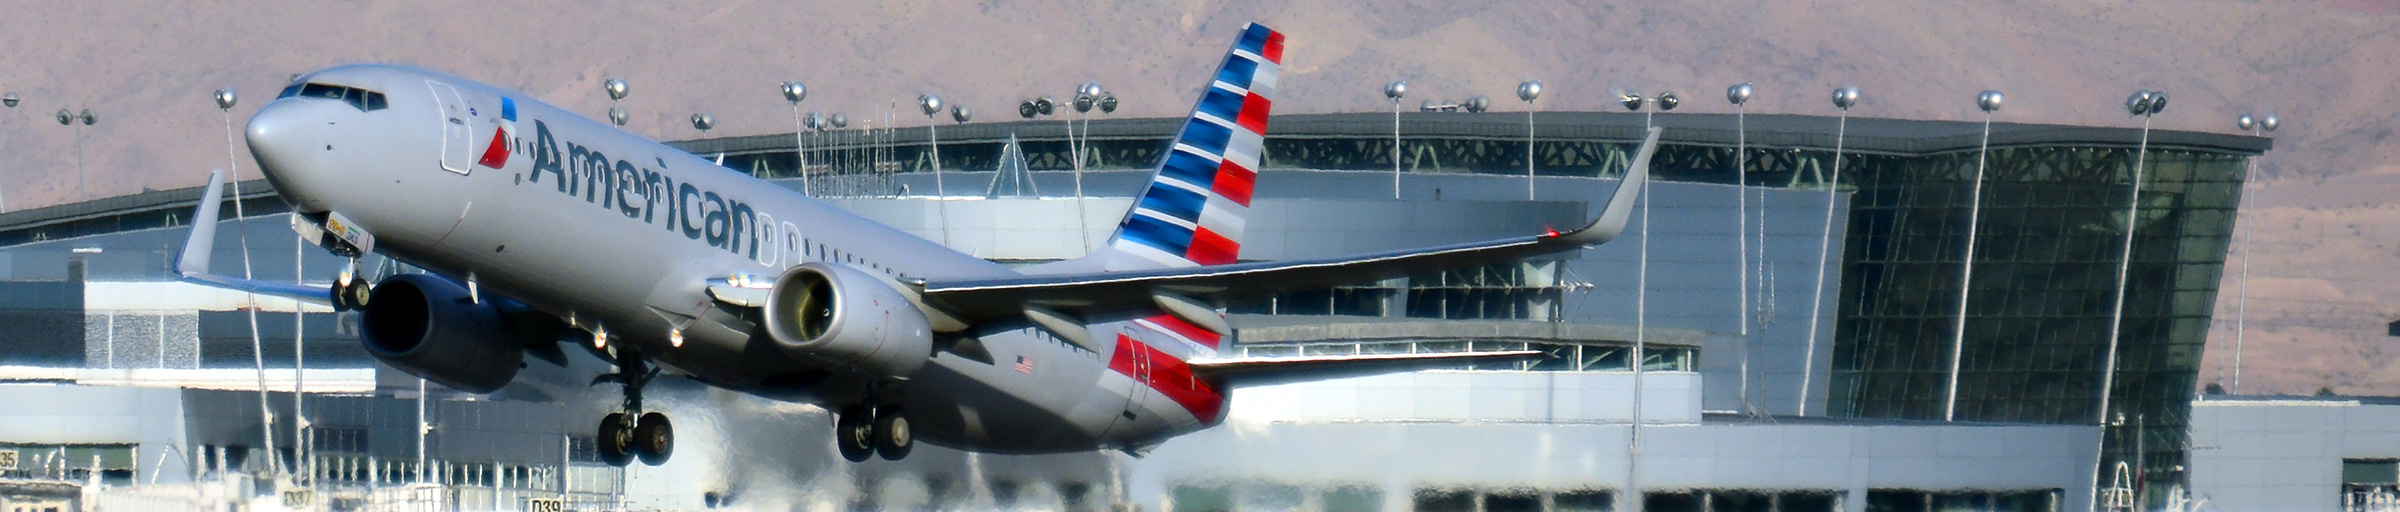 American Airlines at McCarran